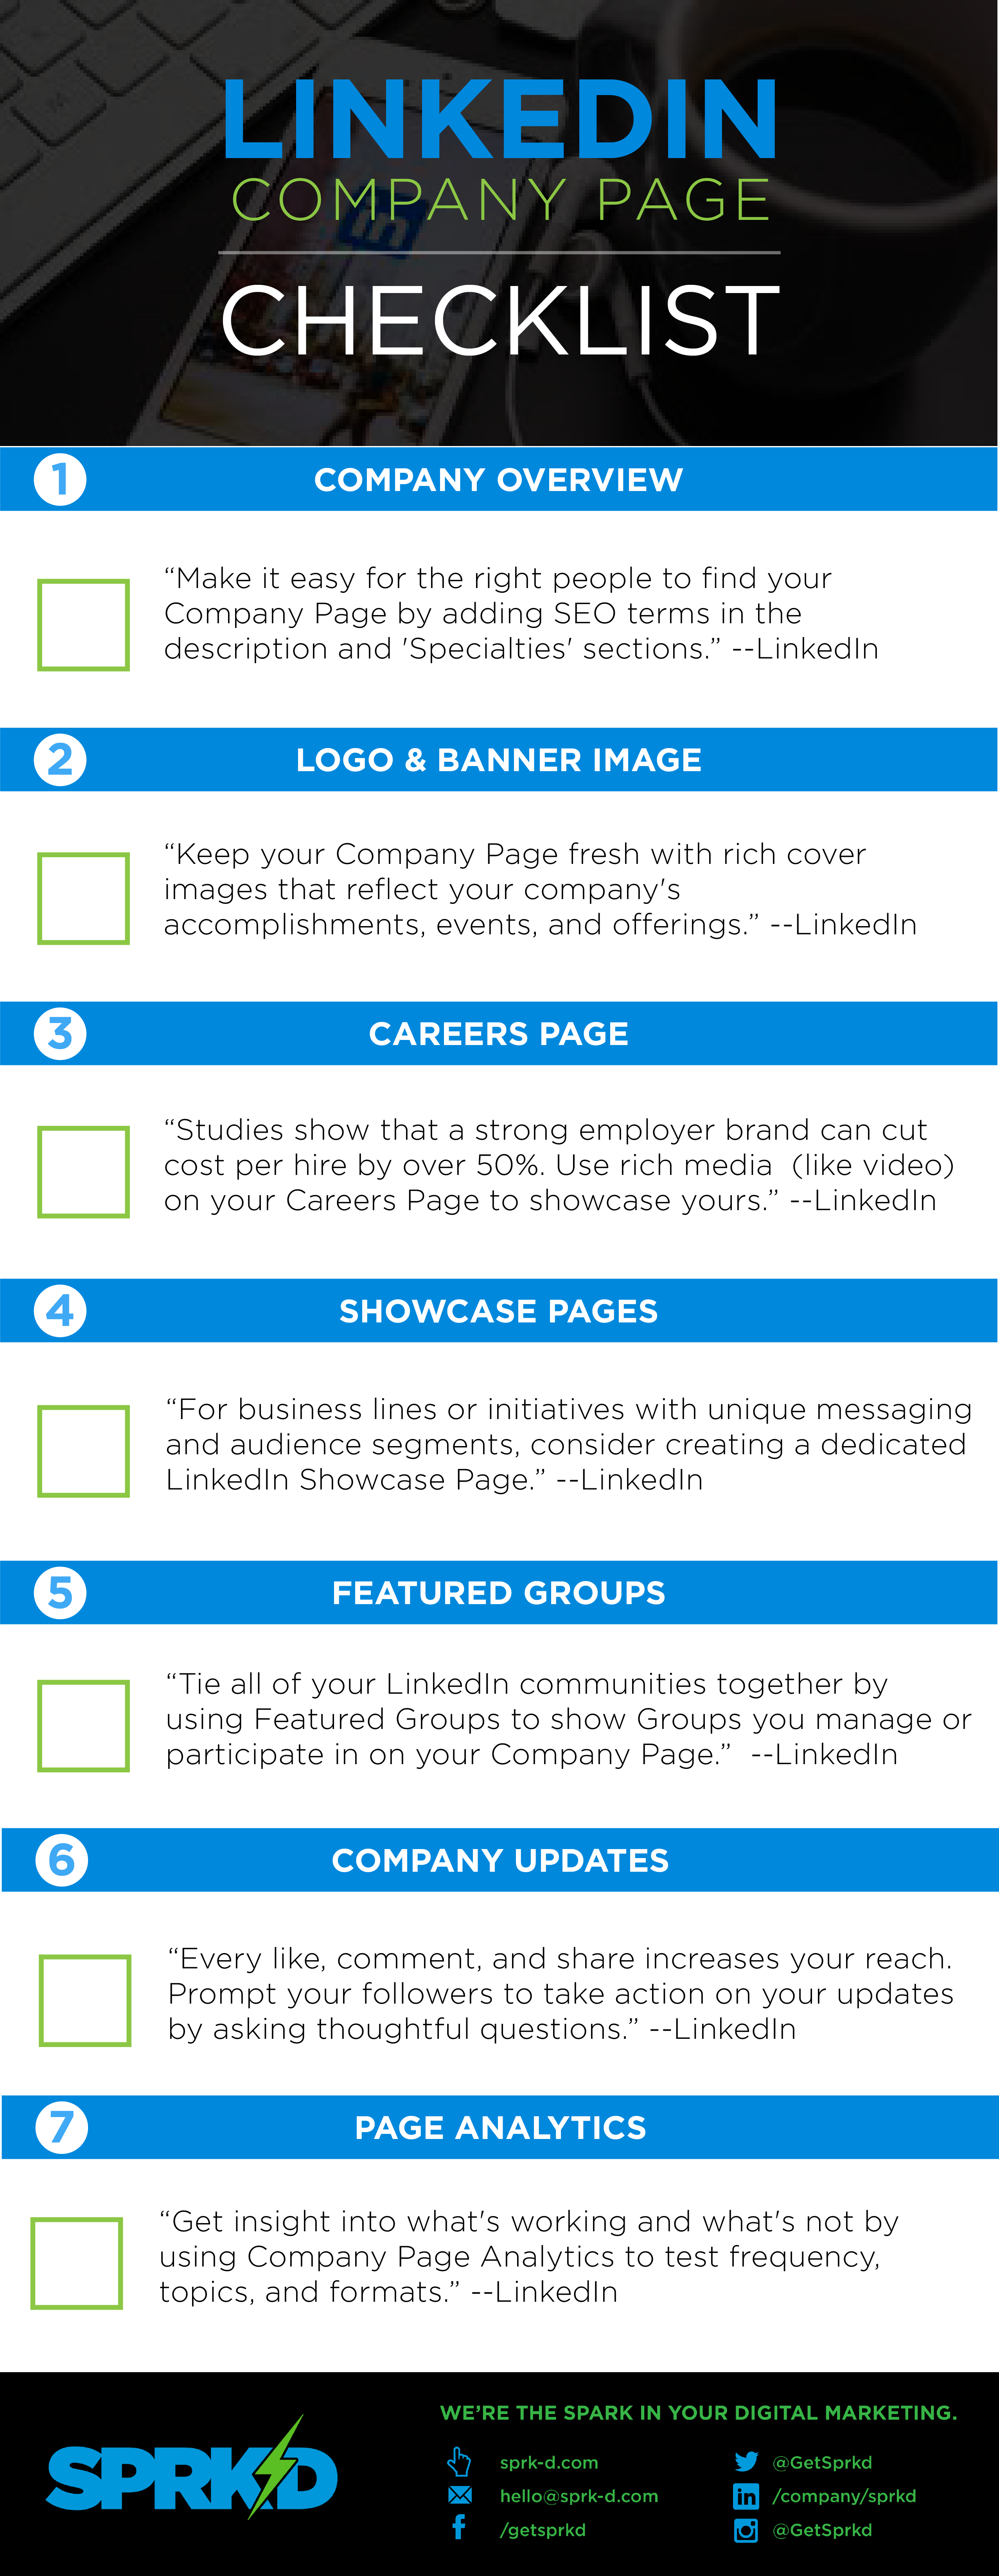 Sprk'd-Linkedin-Company-Page-Checklist.png